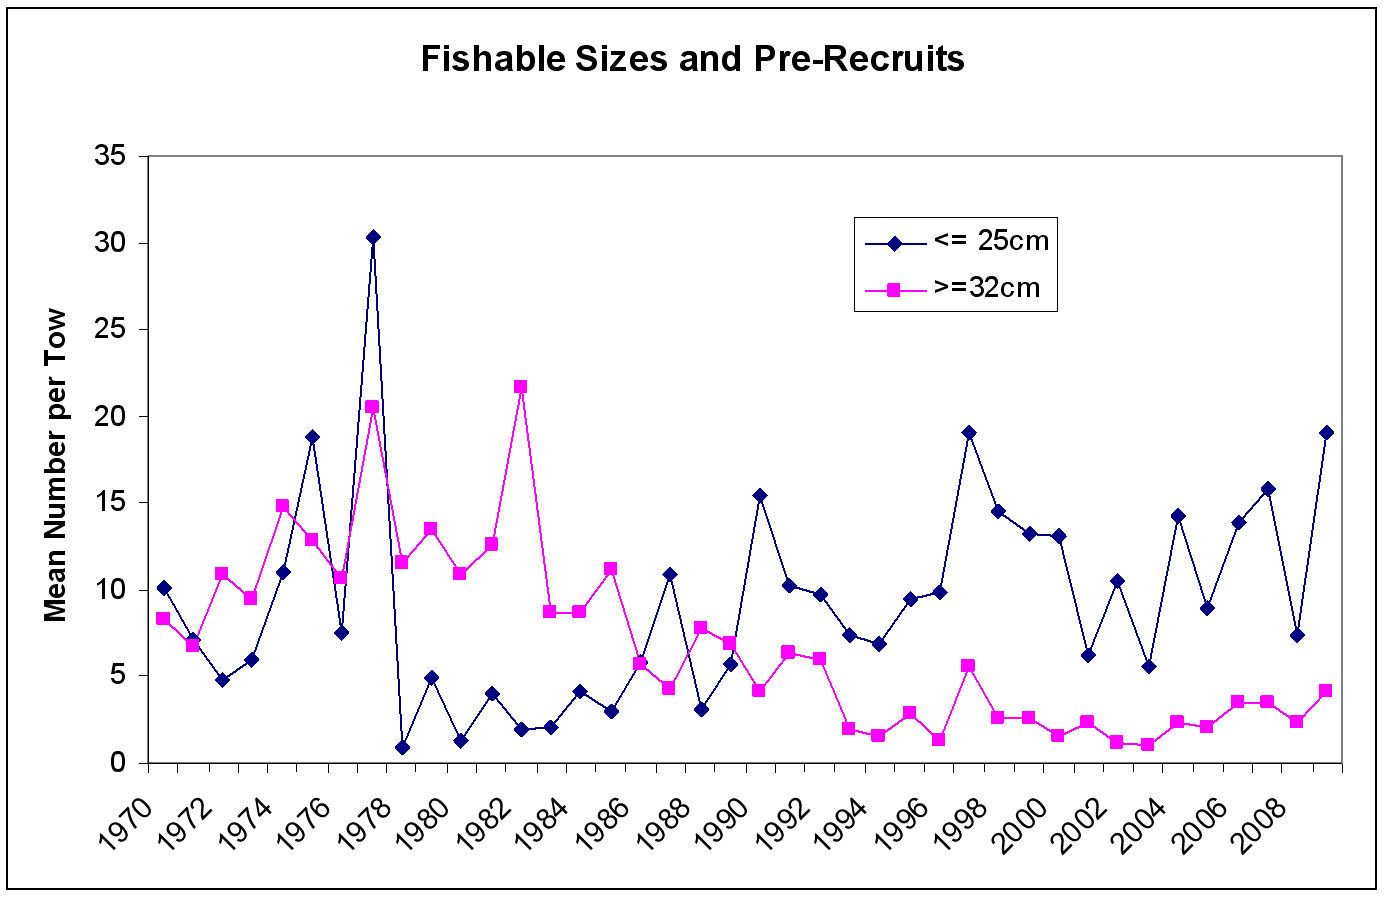 Figure 14 - Fishable sizes and pre-recruits chart